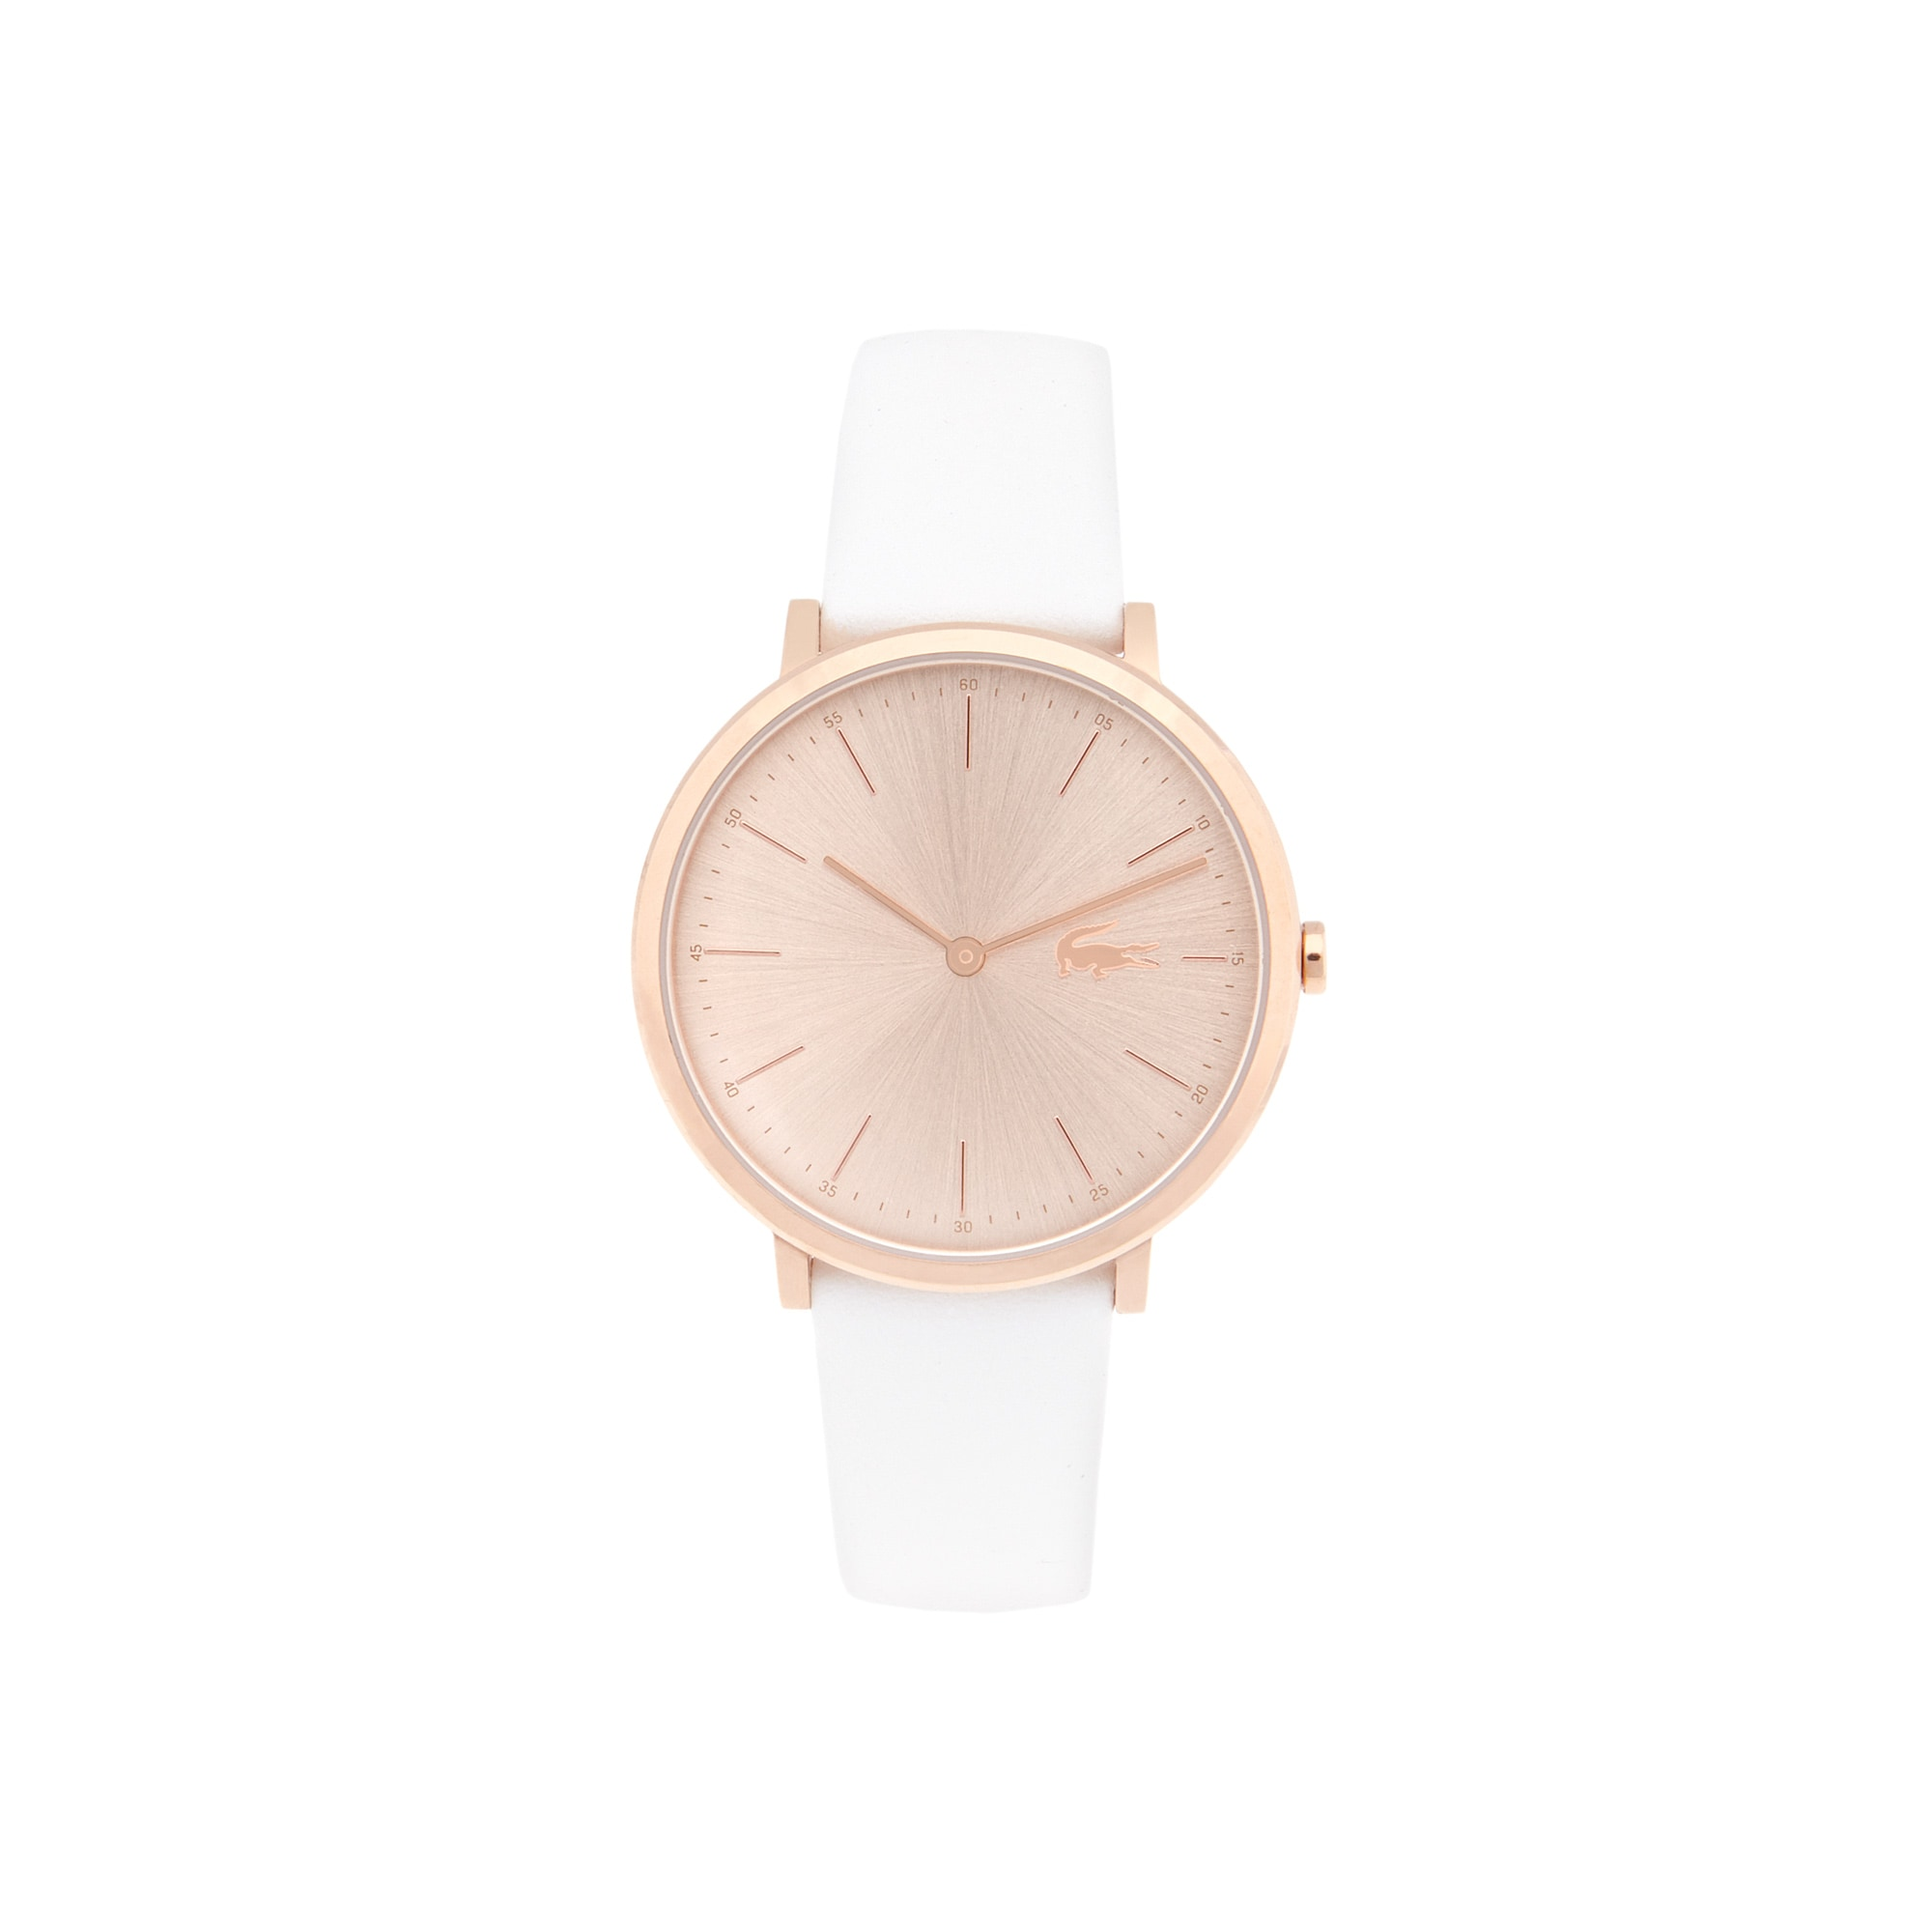 Women's Moon Watch with Golden Leather Strap